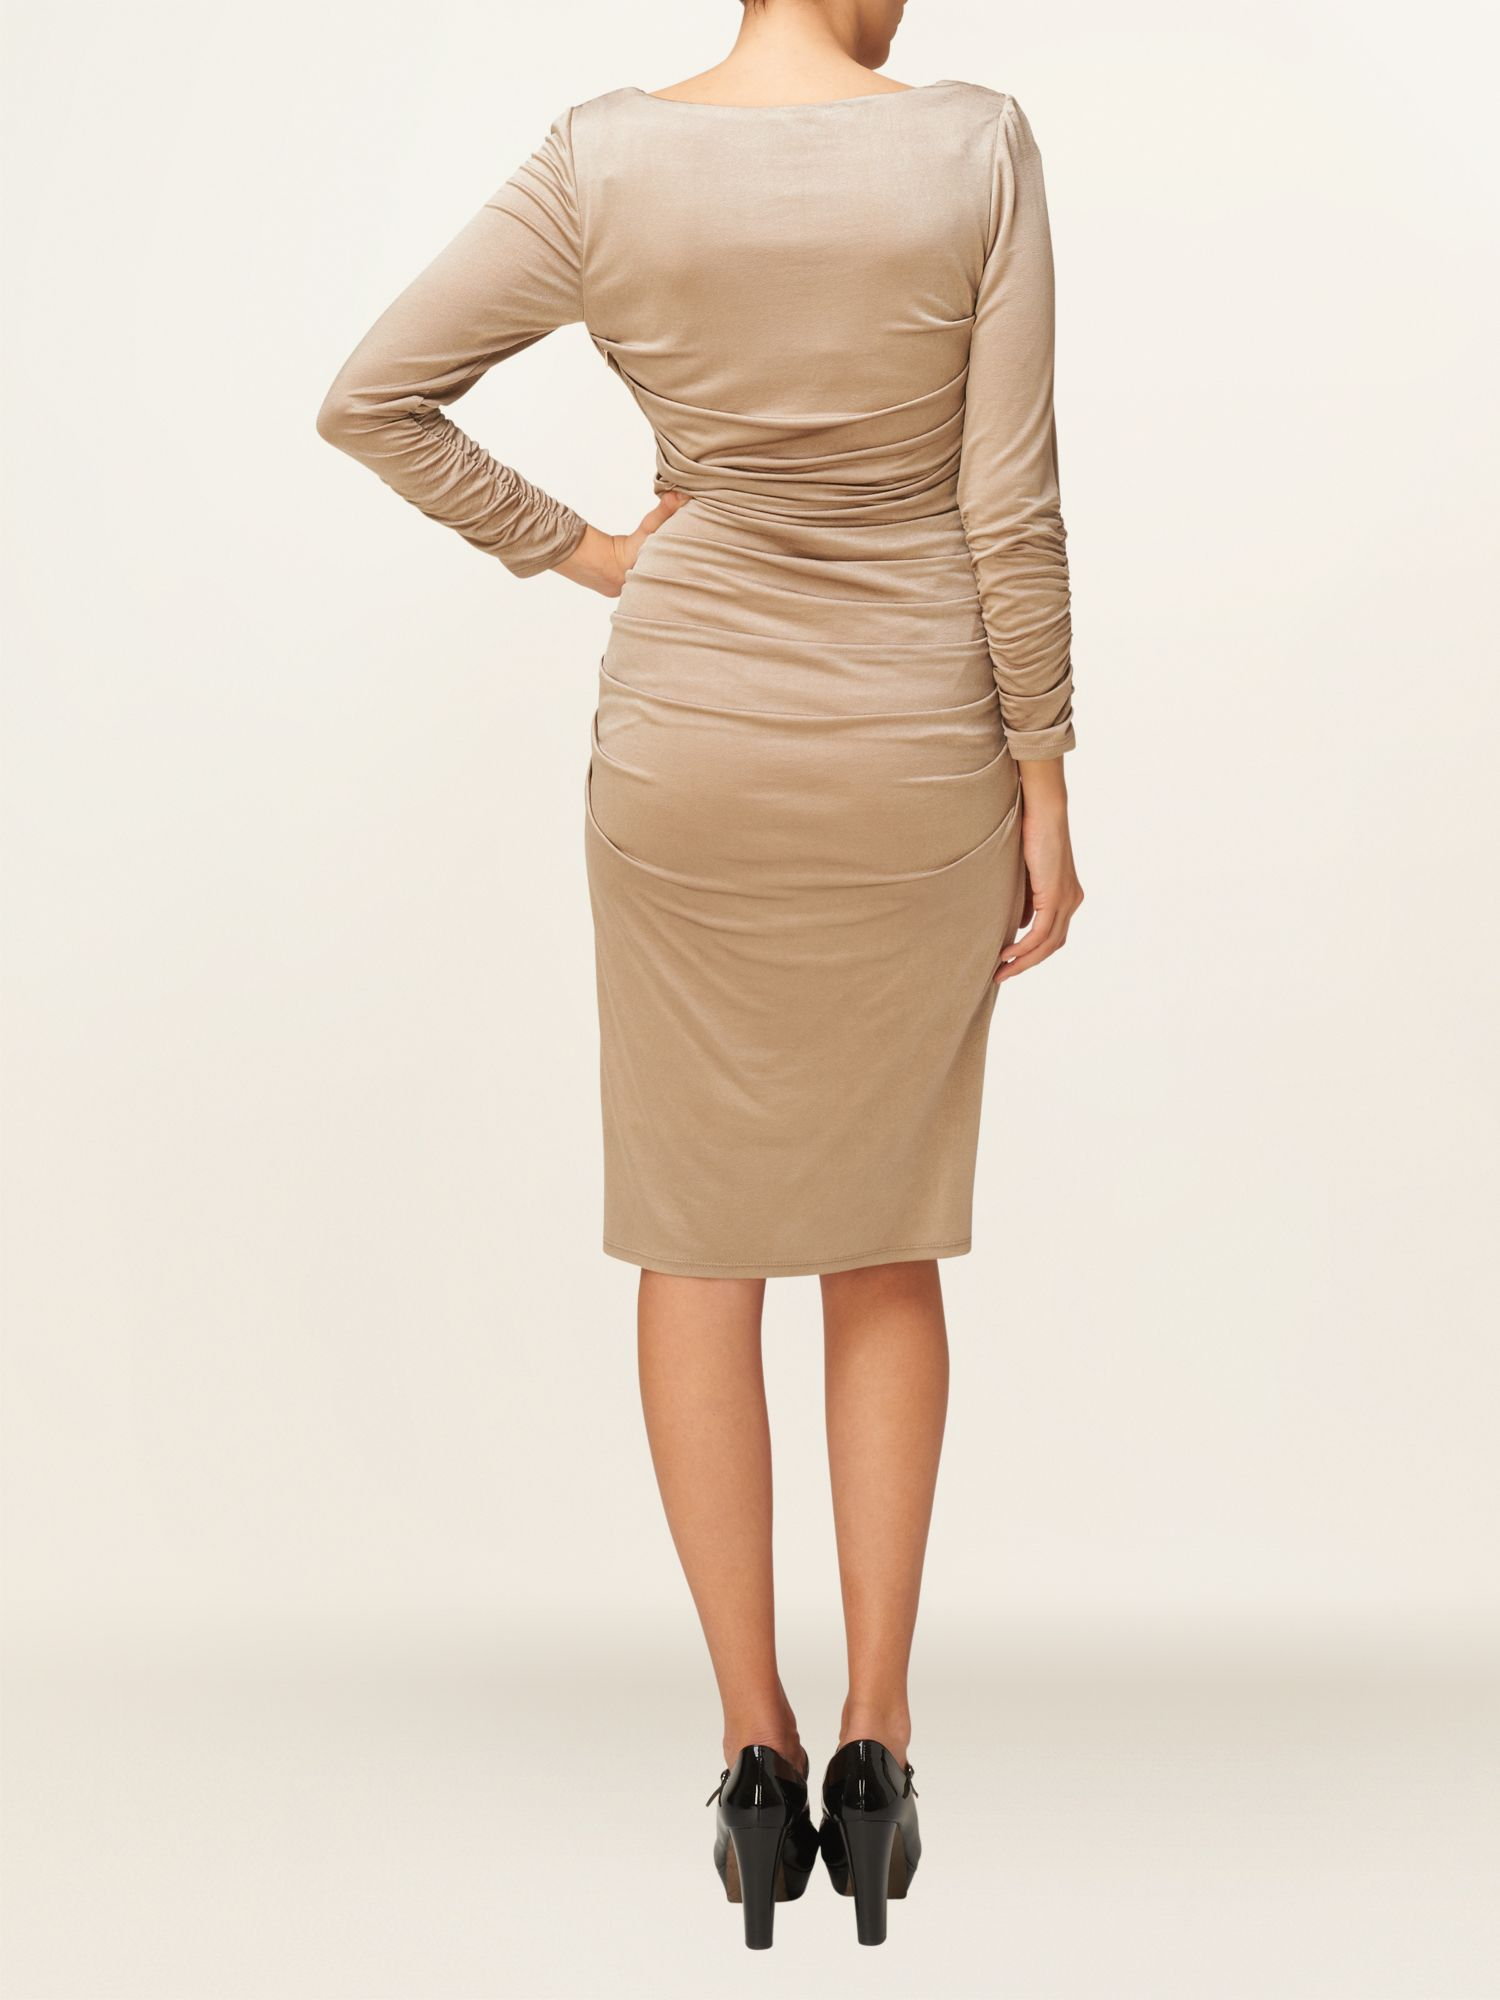 Josie drape dress